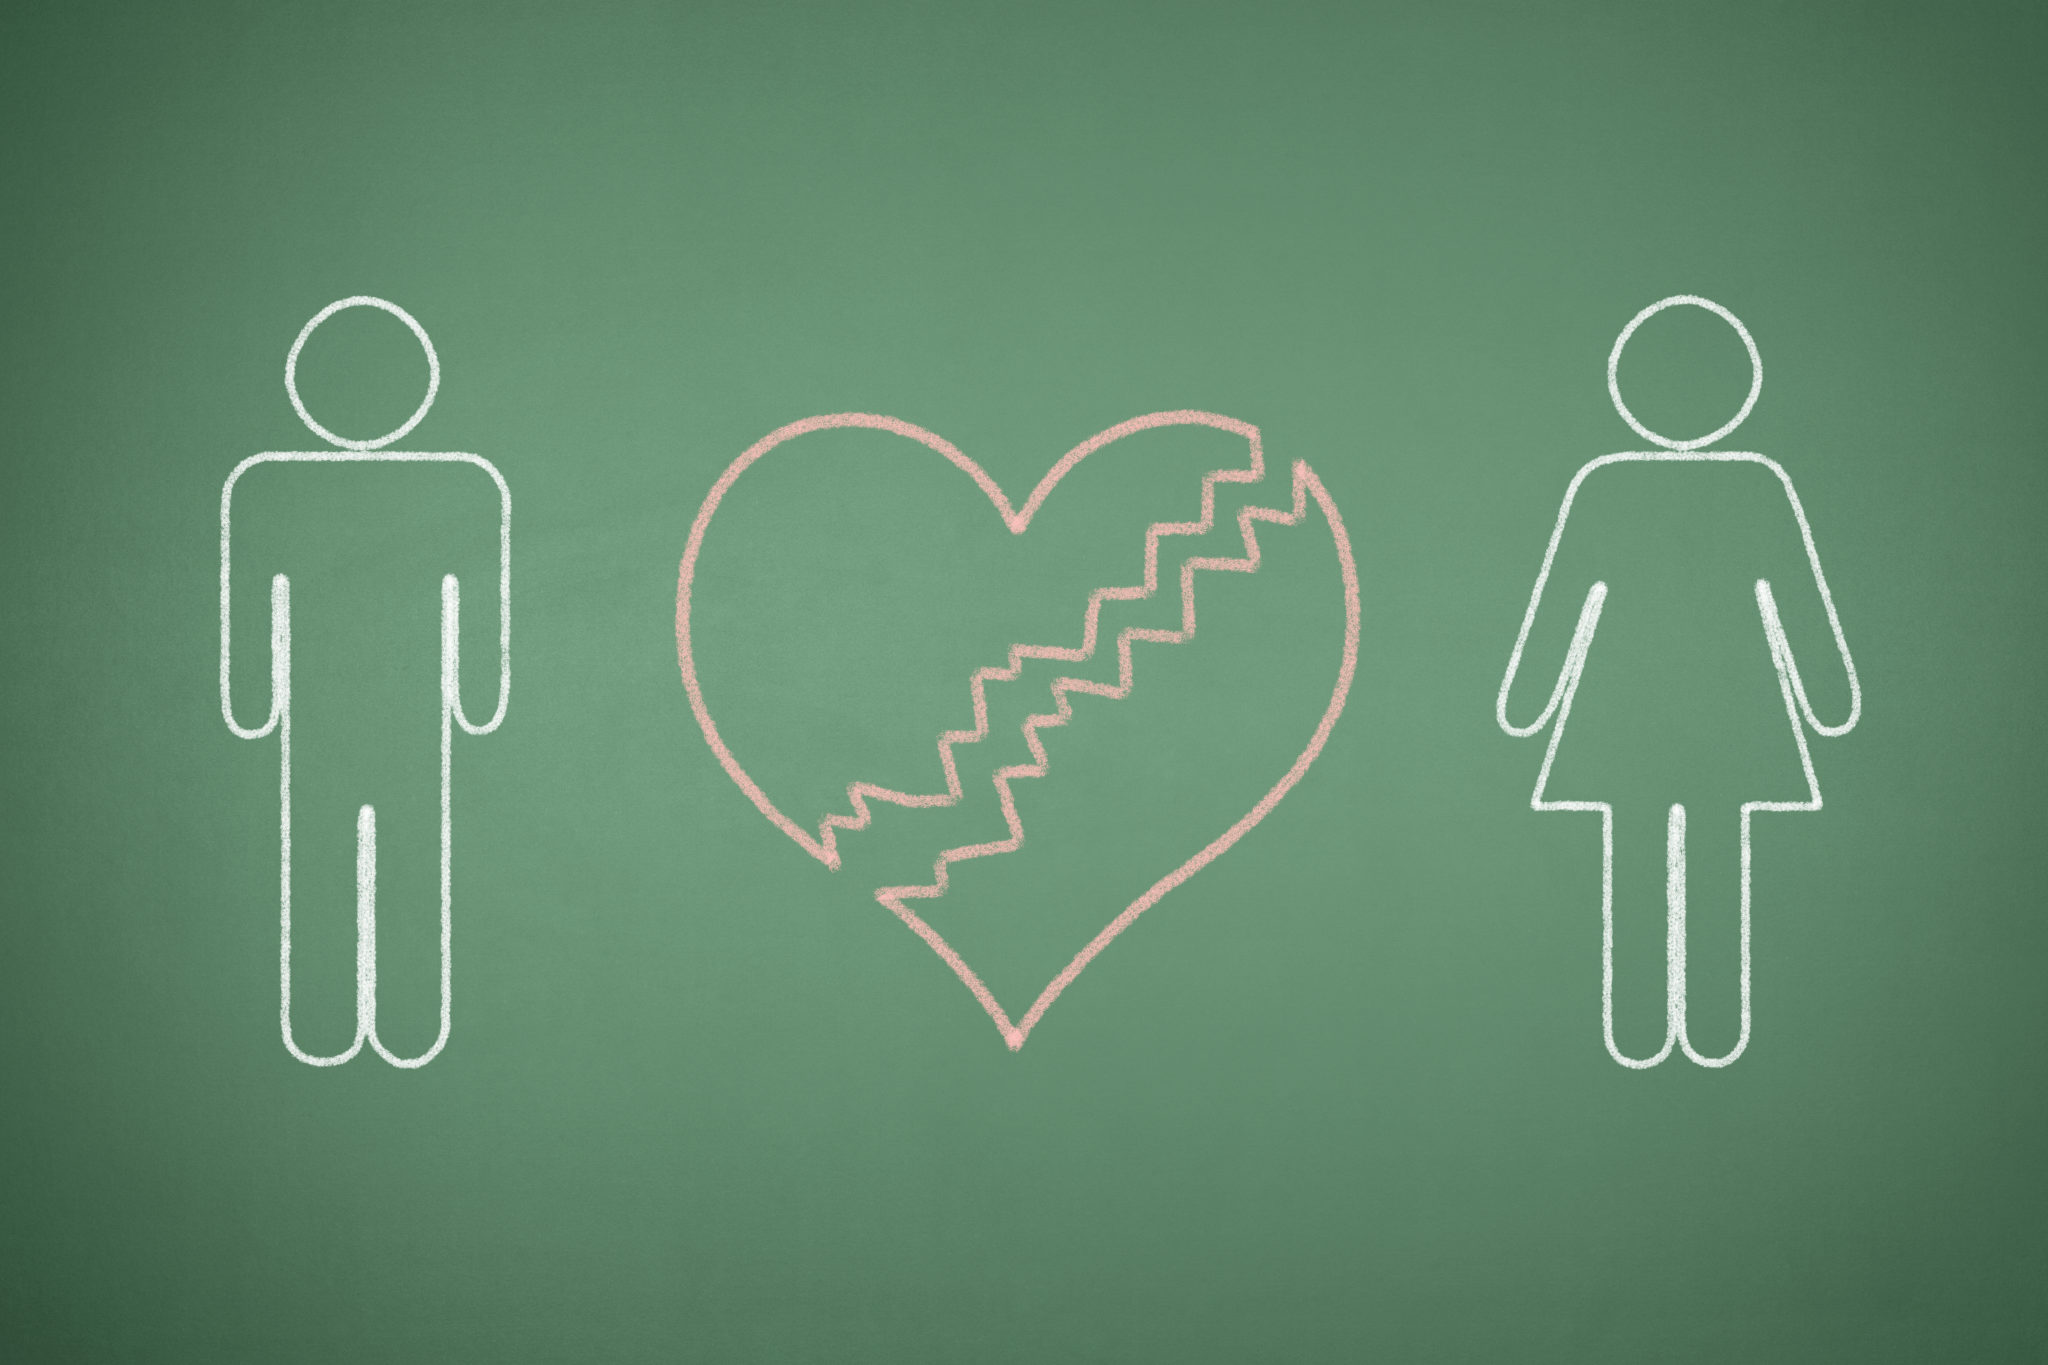 The Male And Female Bathroom Symbols With A Broken Heart Between